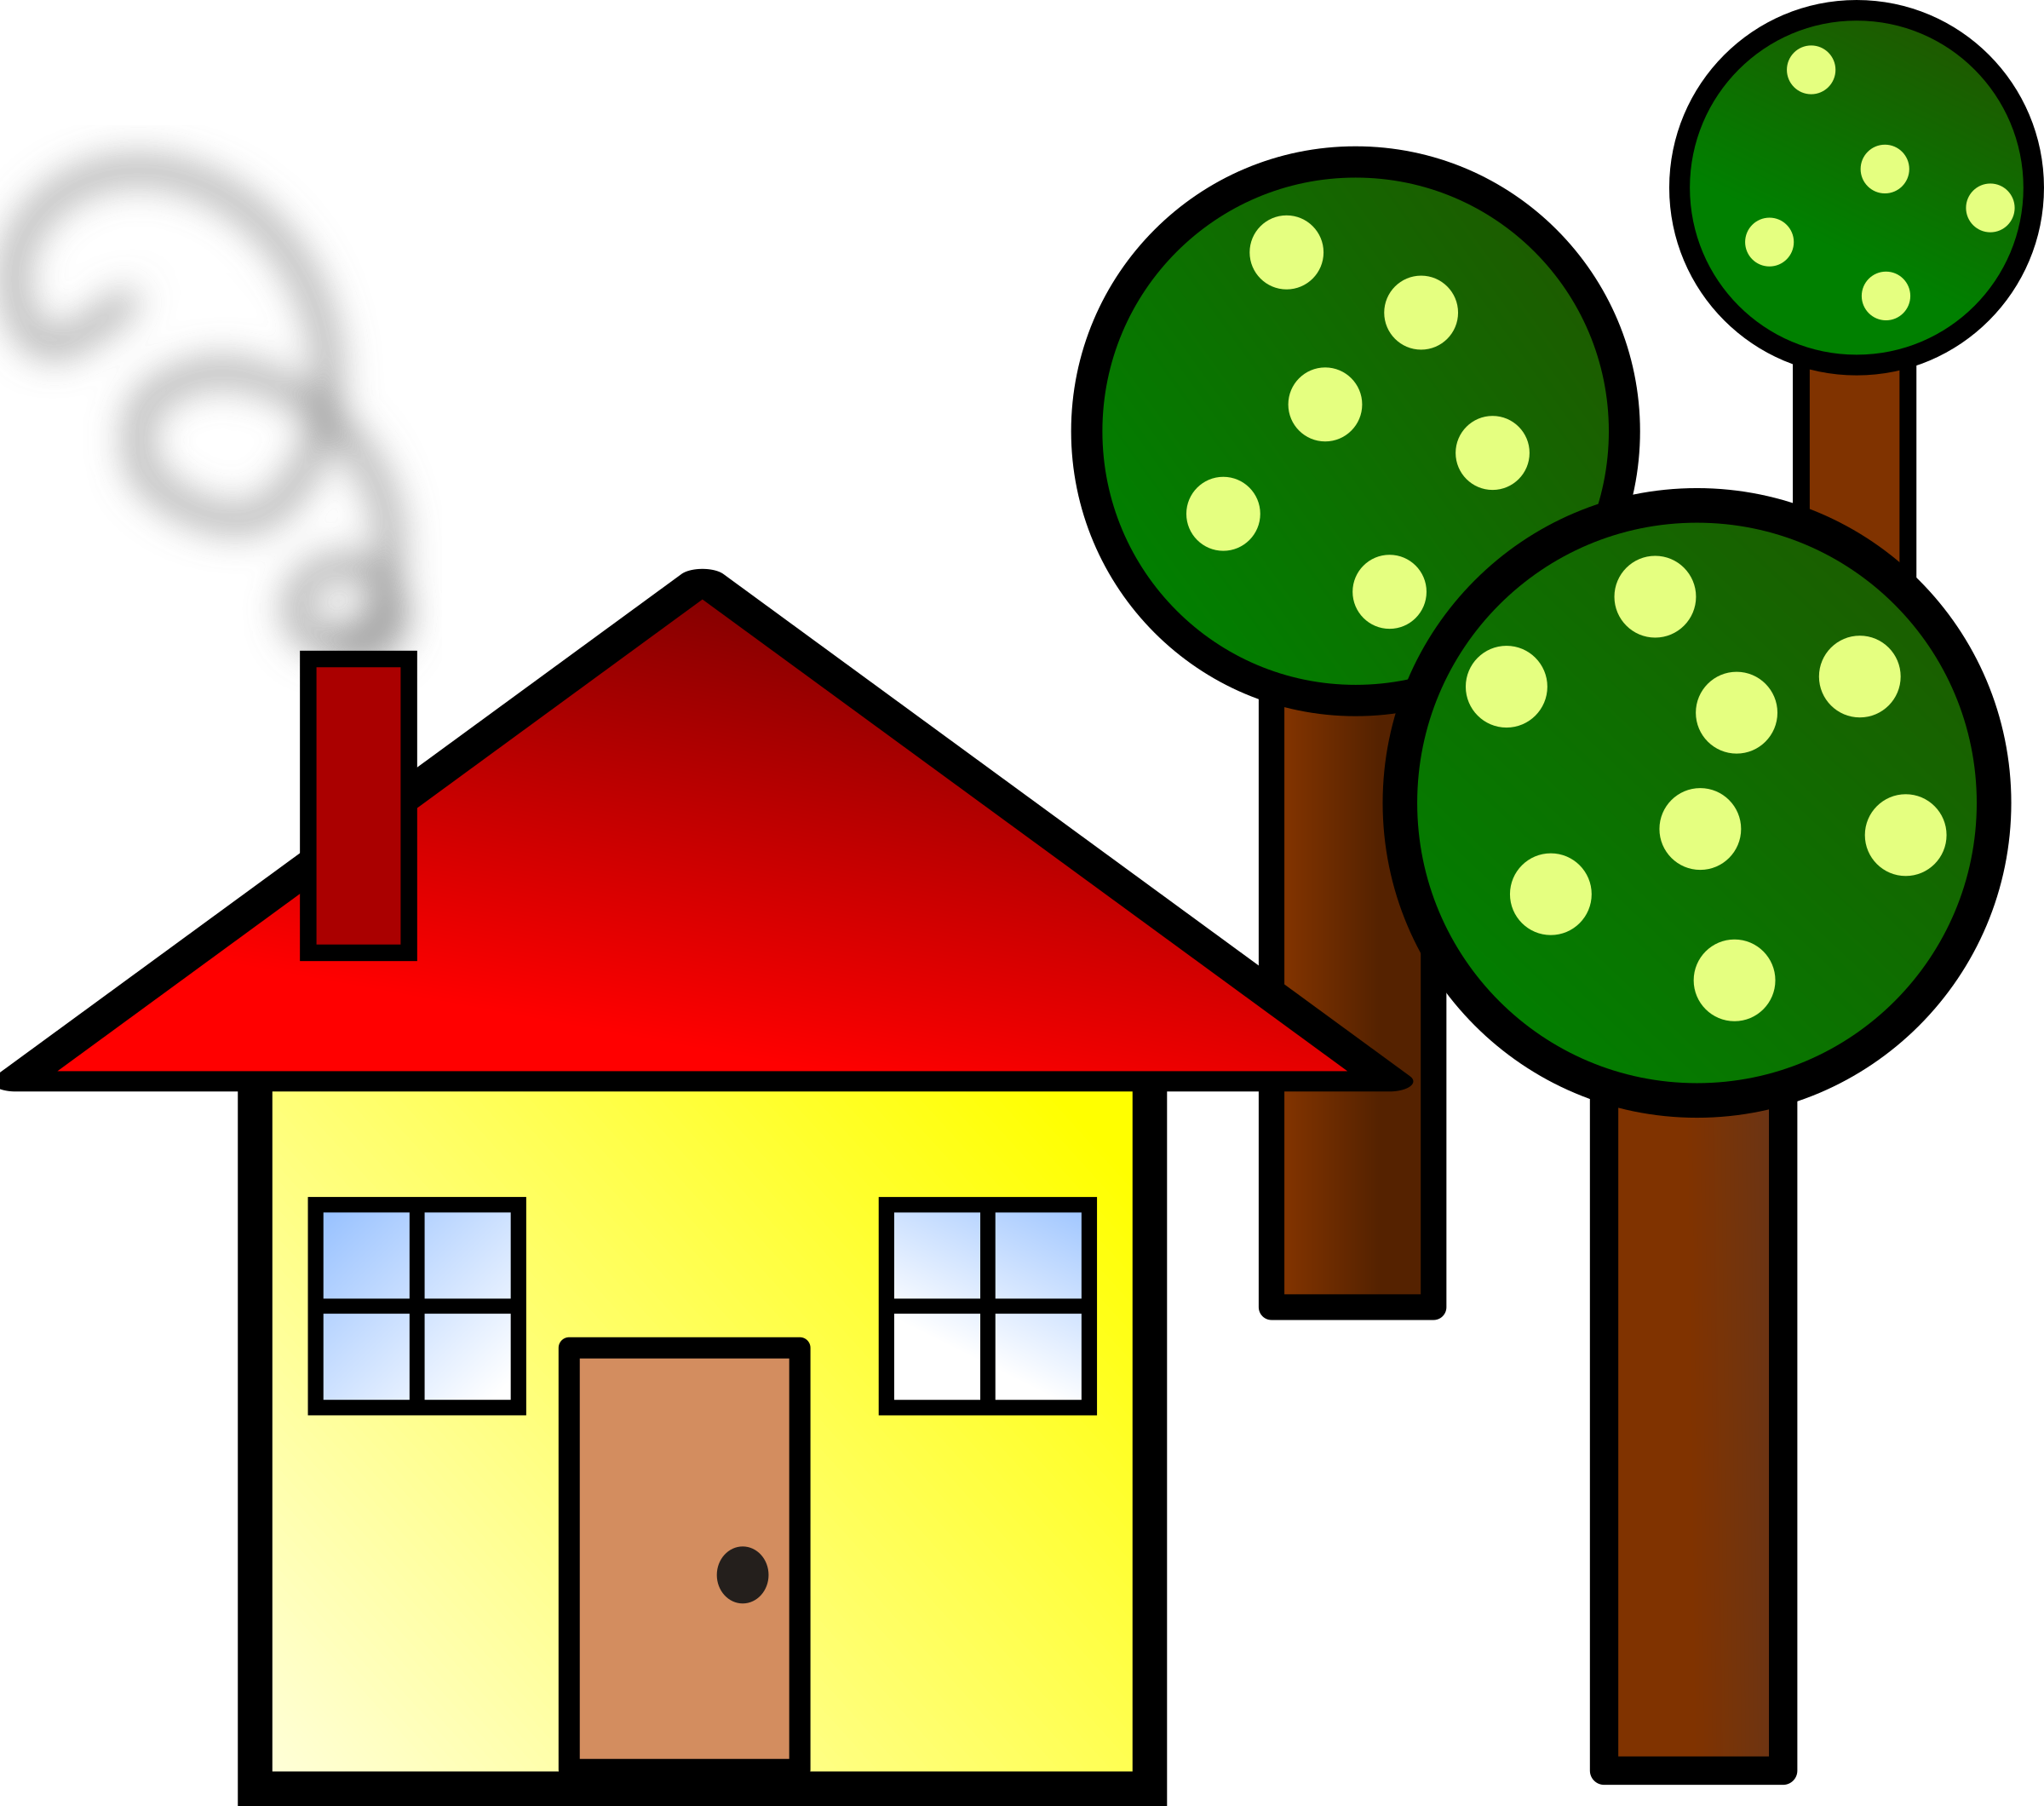 Family house clipart image library stock Clipart - house with trees image library stock